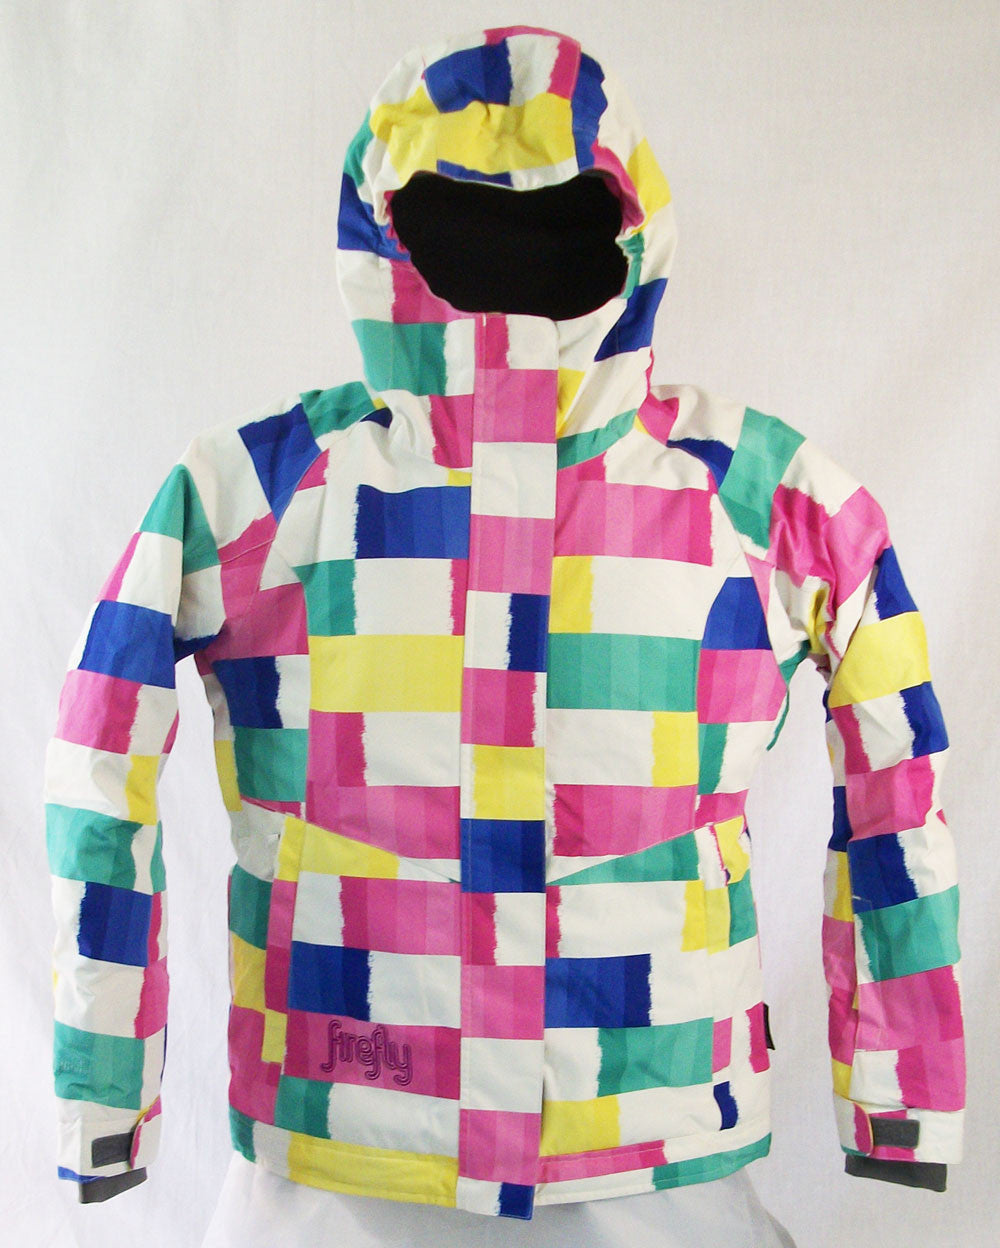 Firefly Flamingo Girls Snowboard Ski Jacket White yellow pink green blue Medium